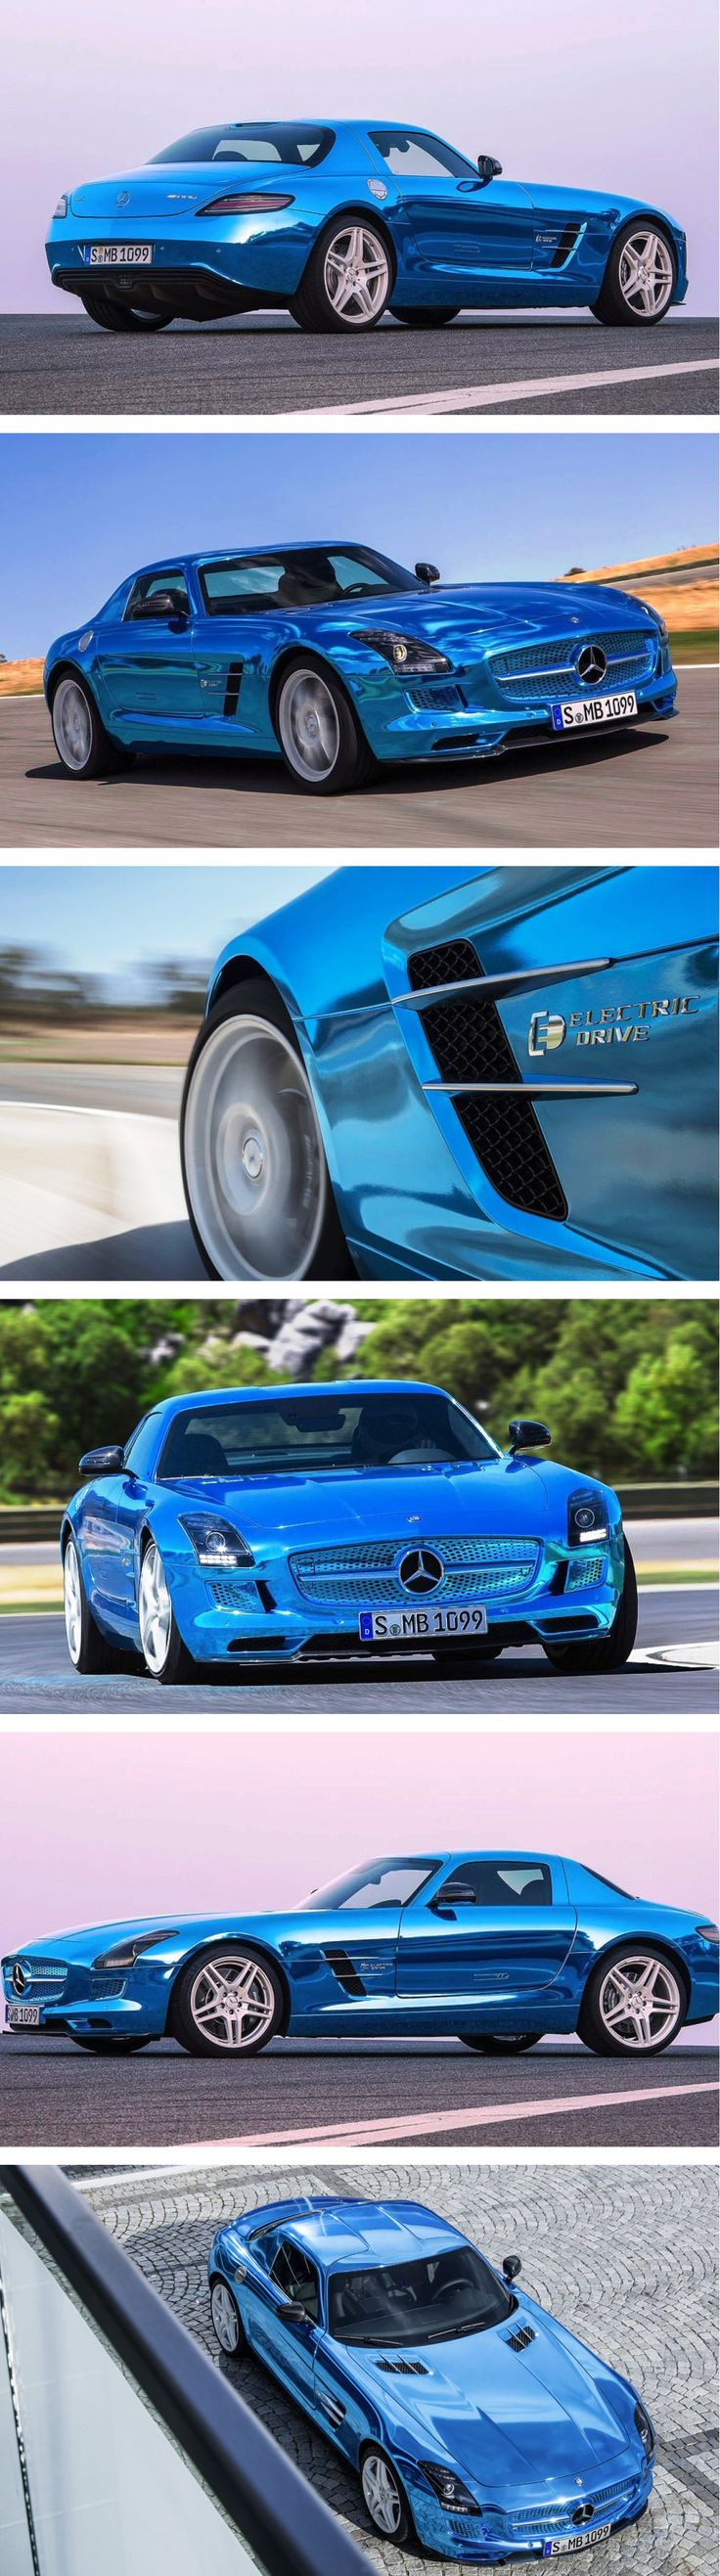 The world's most powerful (and expensive) electric production car: Mercedes-Benz SLS AMG Electric Drive. Click for the future...